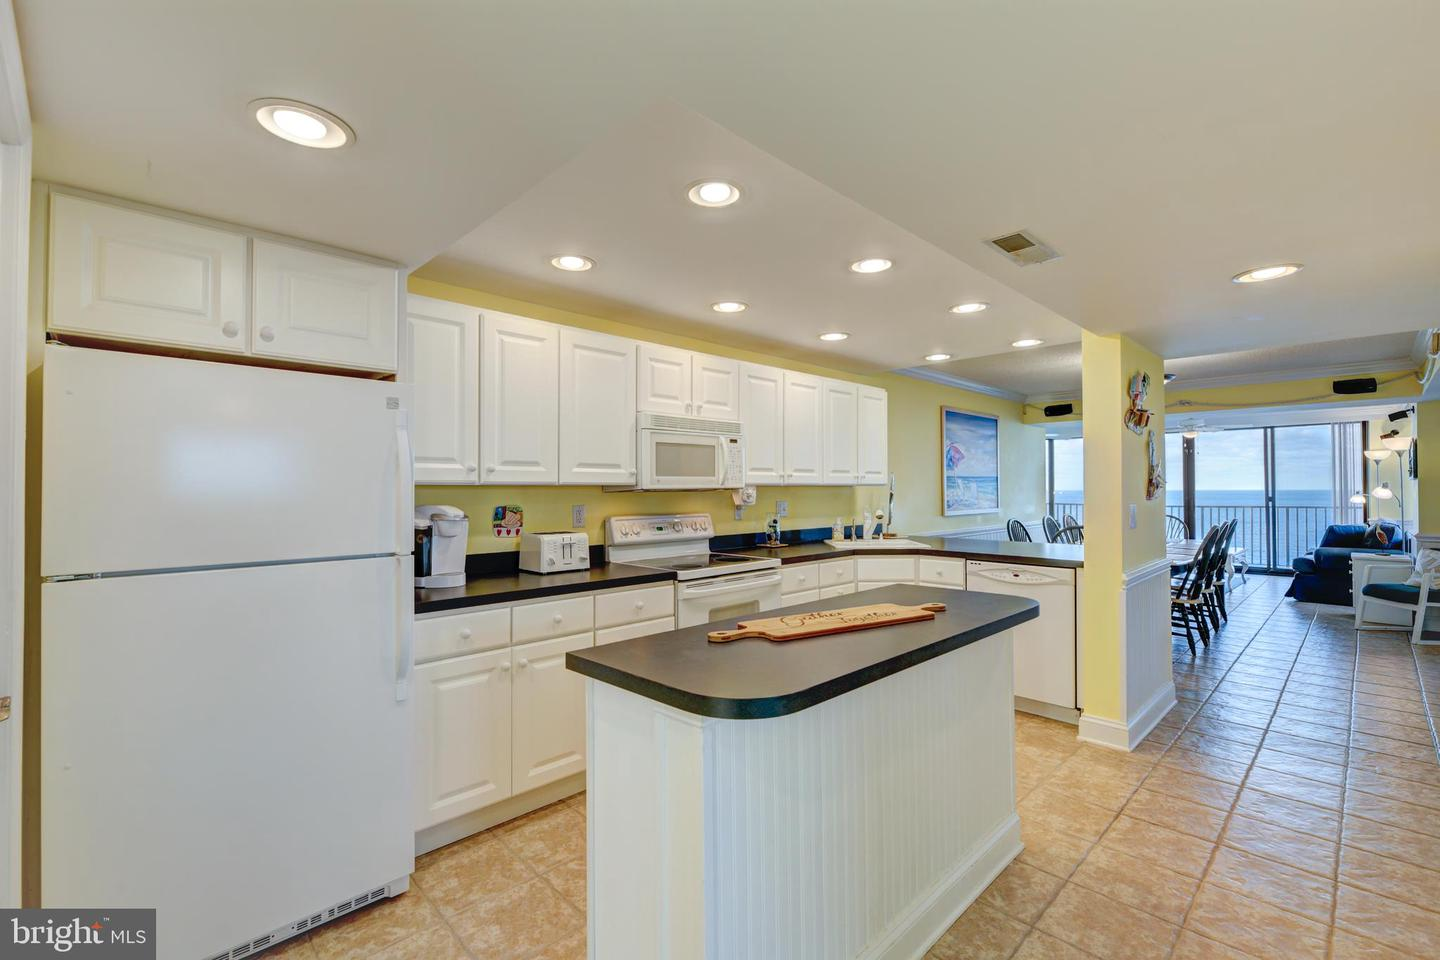 DESU152792-302186530261-2019-12-16-14-23-17 1206 S Edgewater House Rd #1206s | Bethany Beach, De Real Estate For Sale | MLS# Desu152792  - Suzanne Macnab